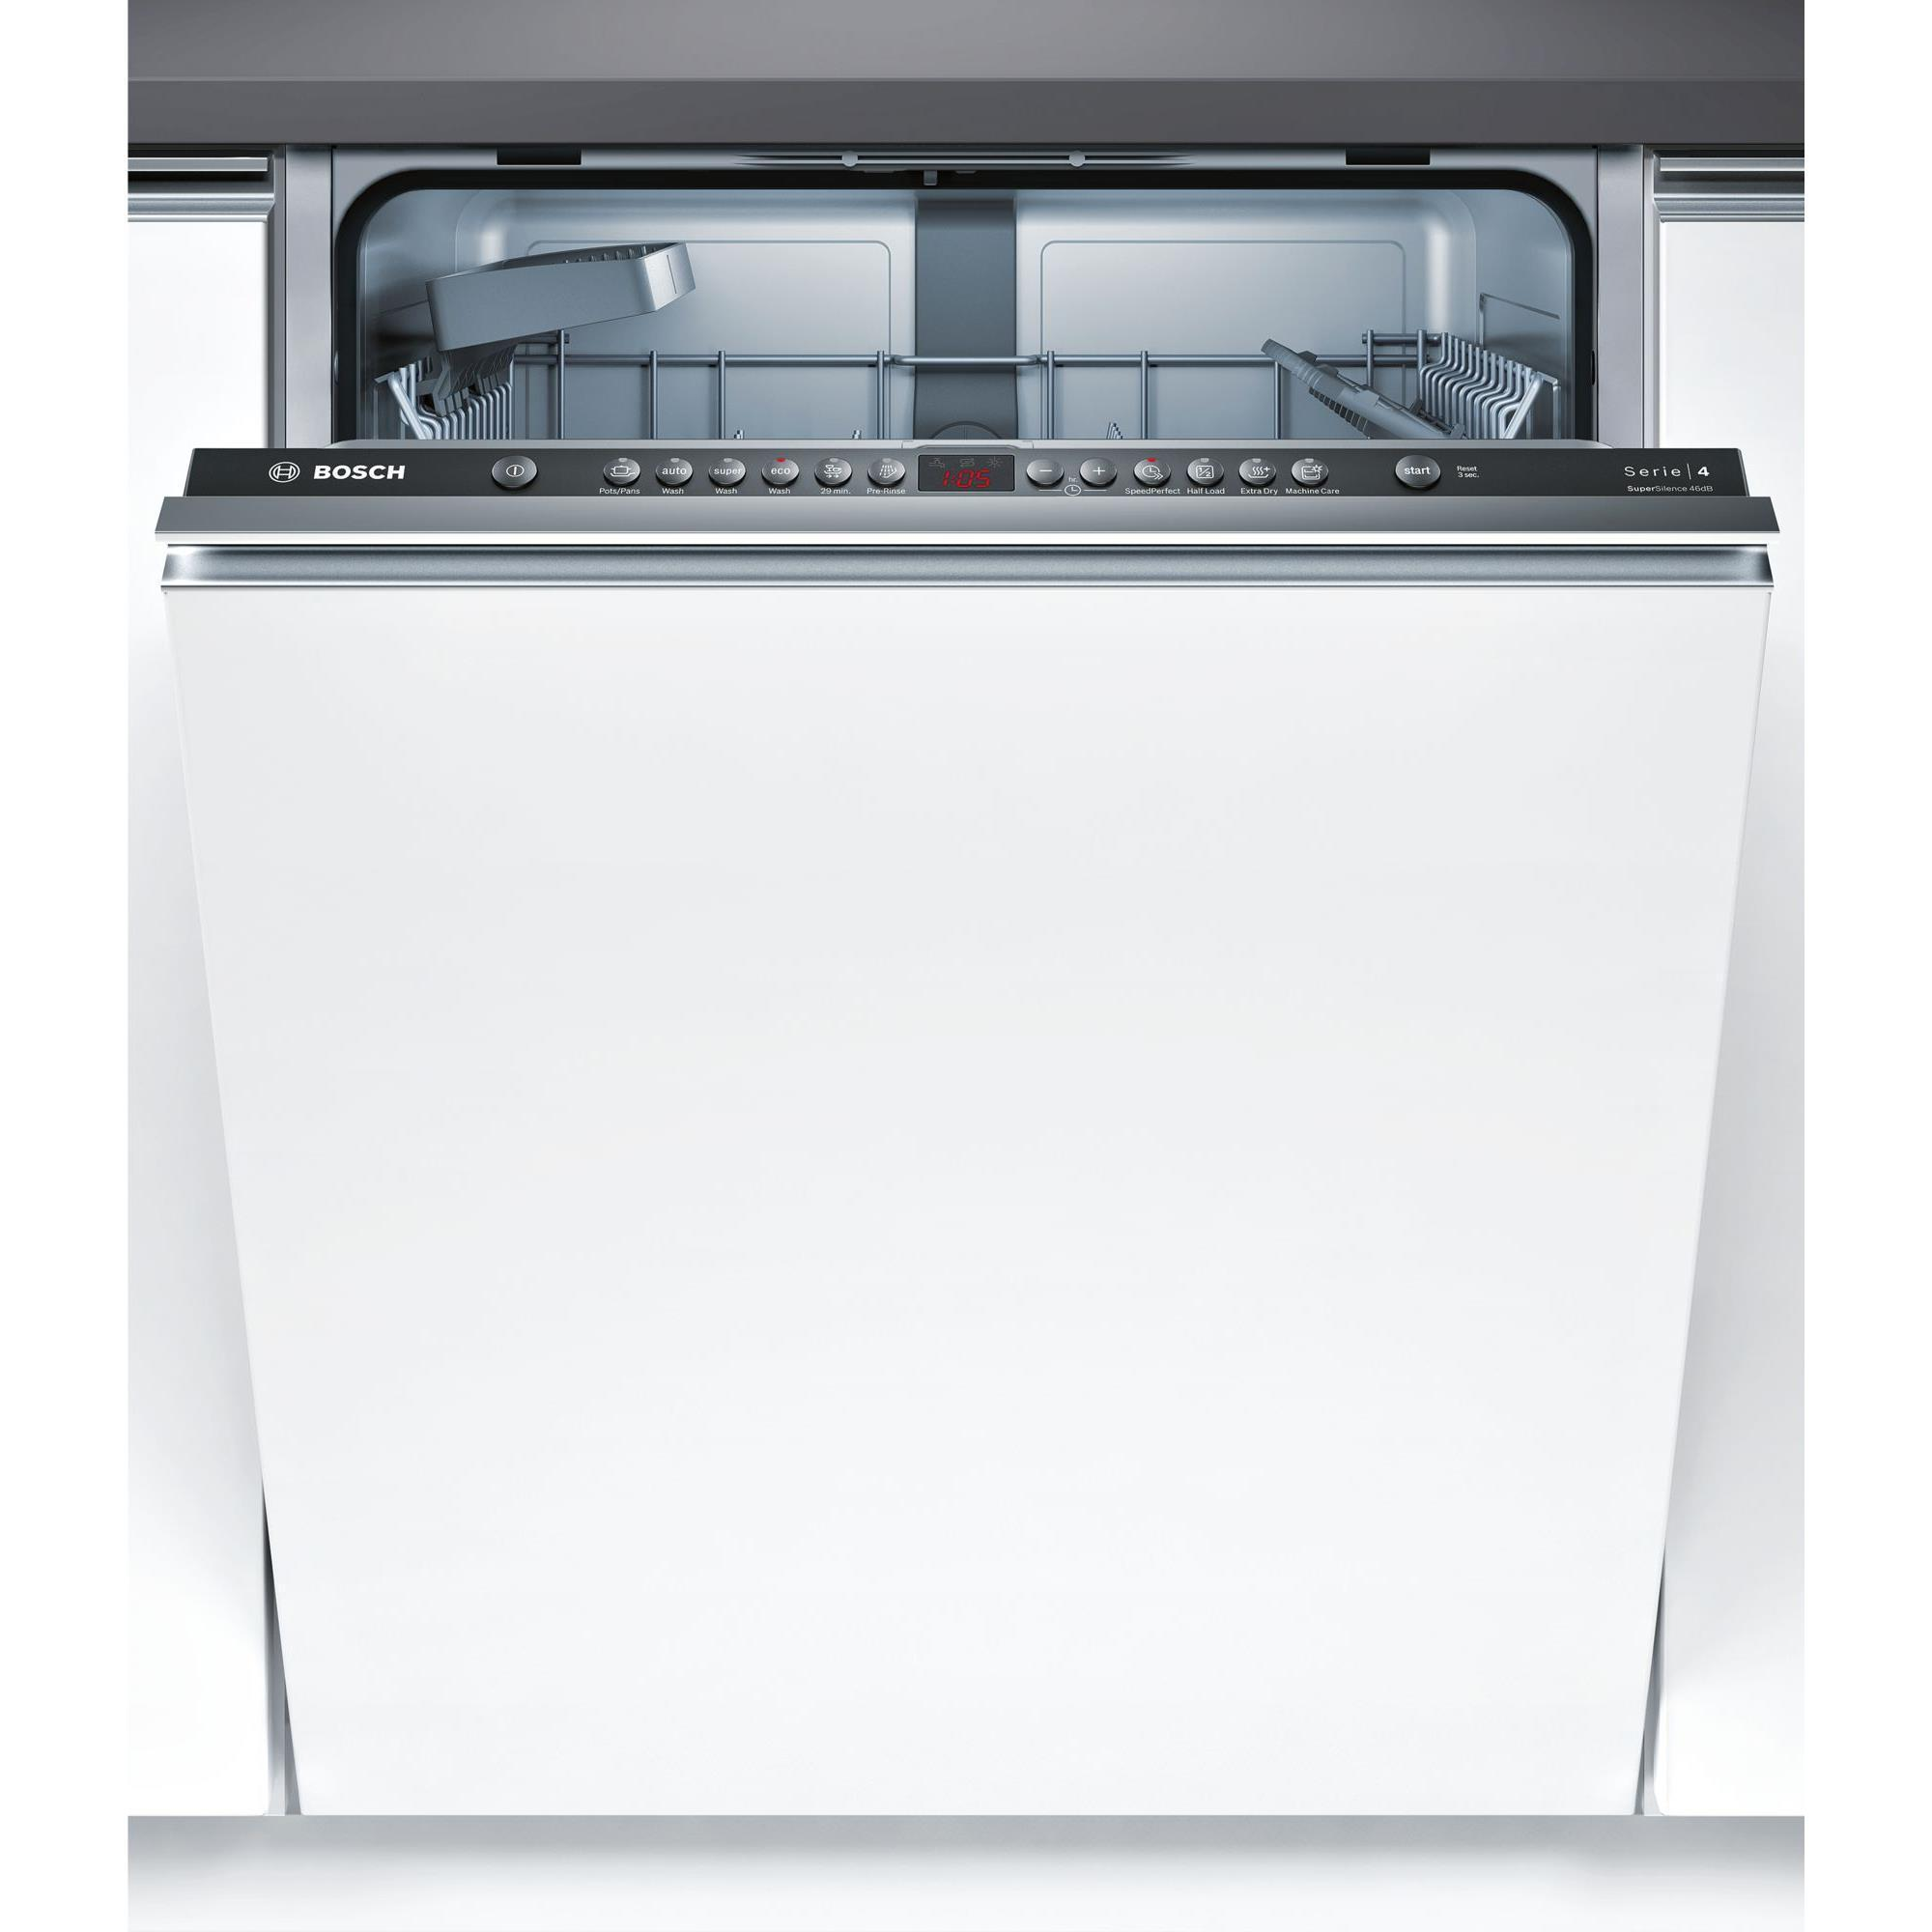 Bosch SMV46GX01A Fully Integrated Dishwasher (Stainless Steel)